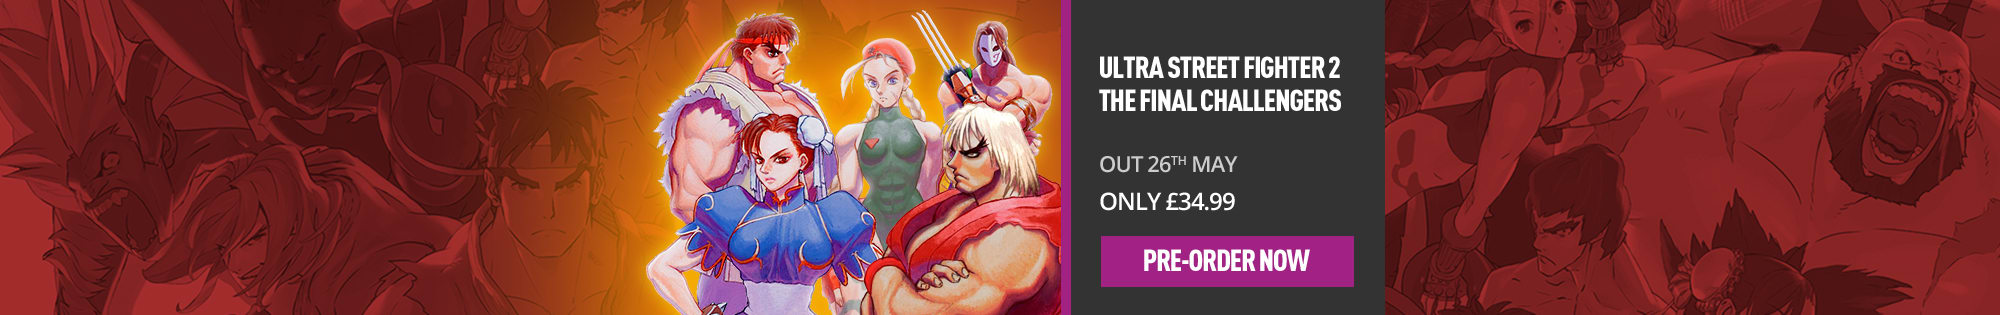 Ultra Street Fighter 2 The Final Challengers for Nintendo Switch - Homepage banner